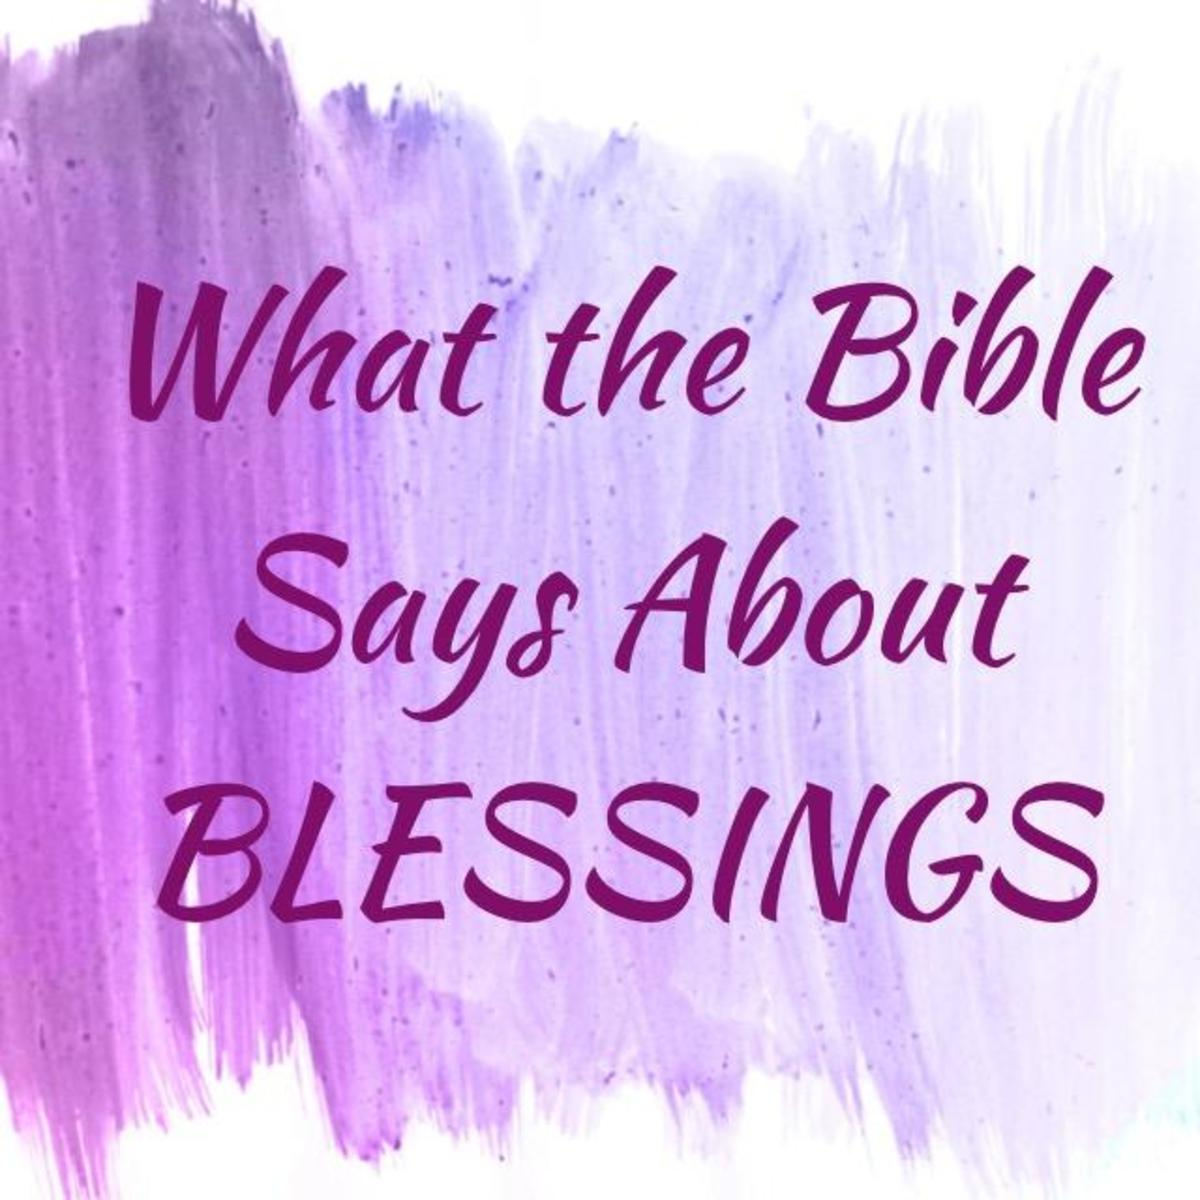 What the Bible Says About Blessings?